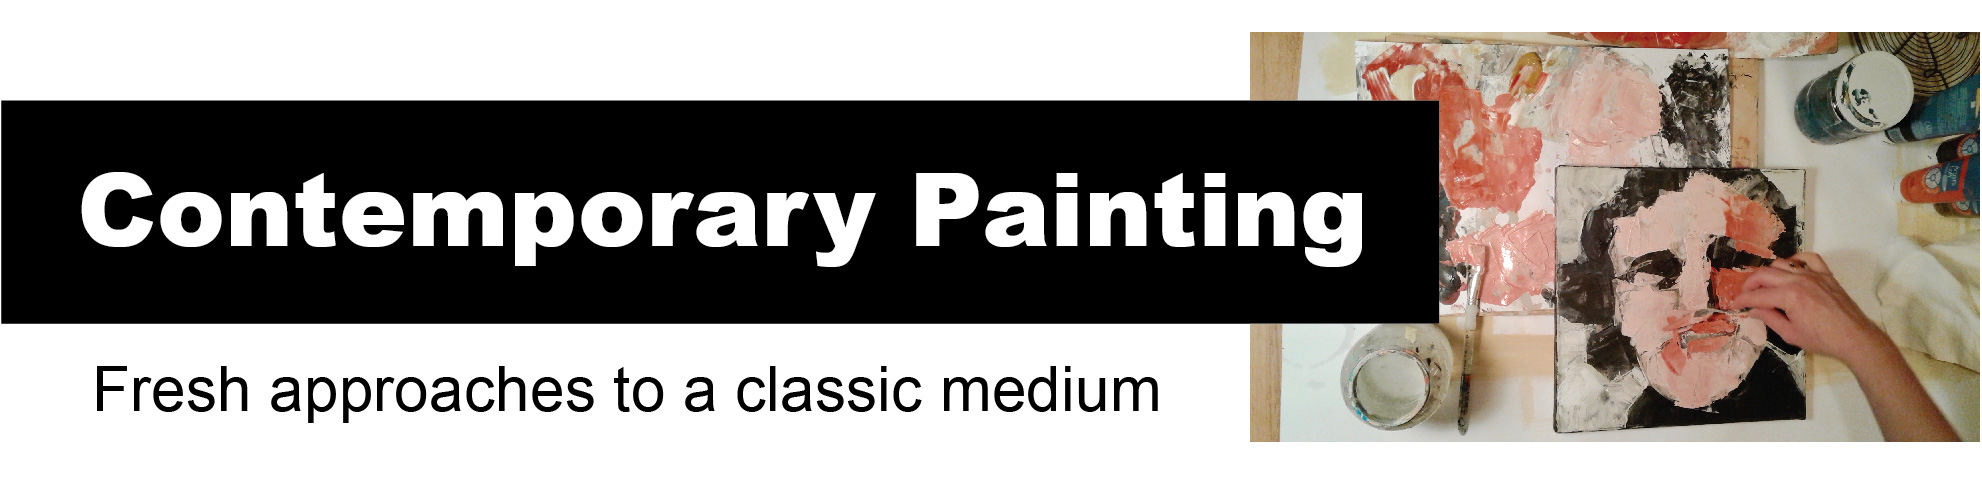 Painting banner